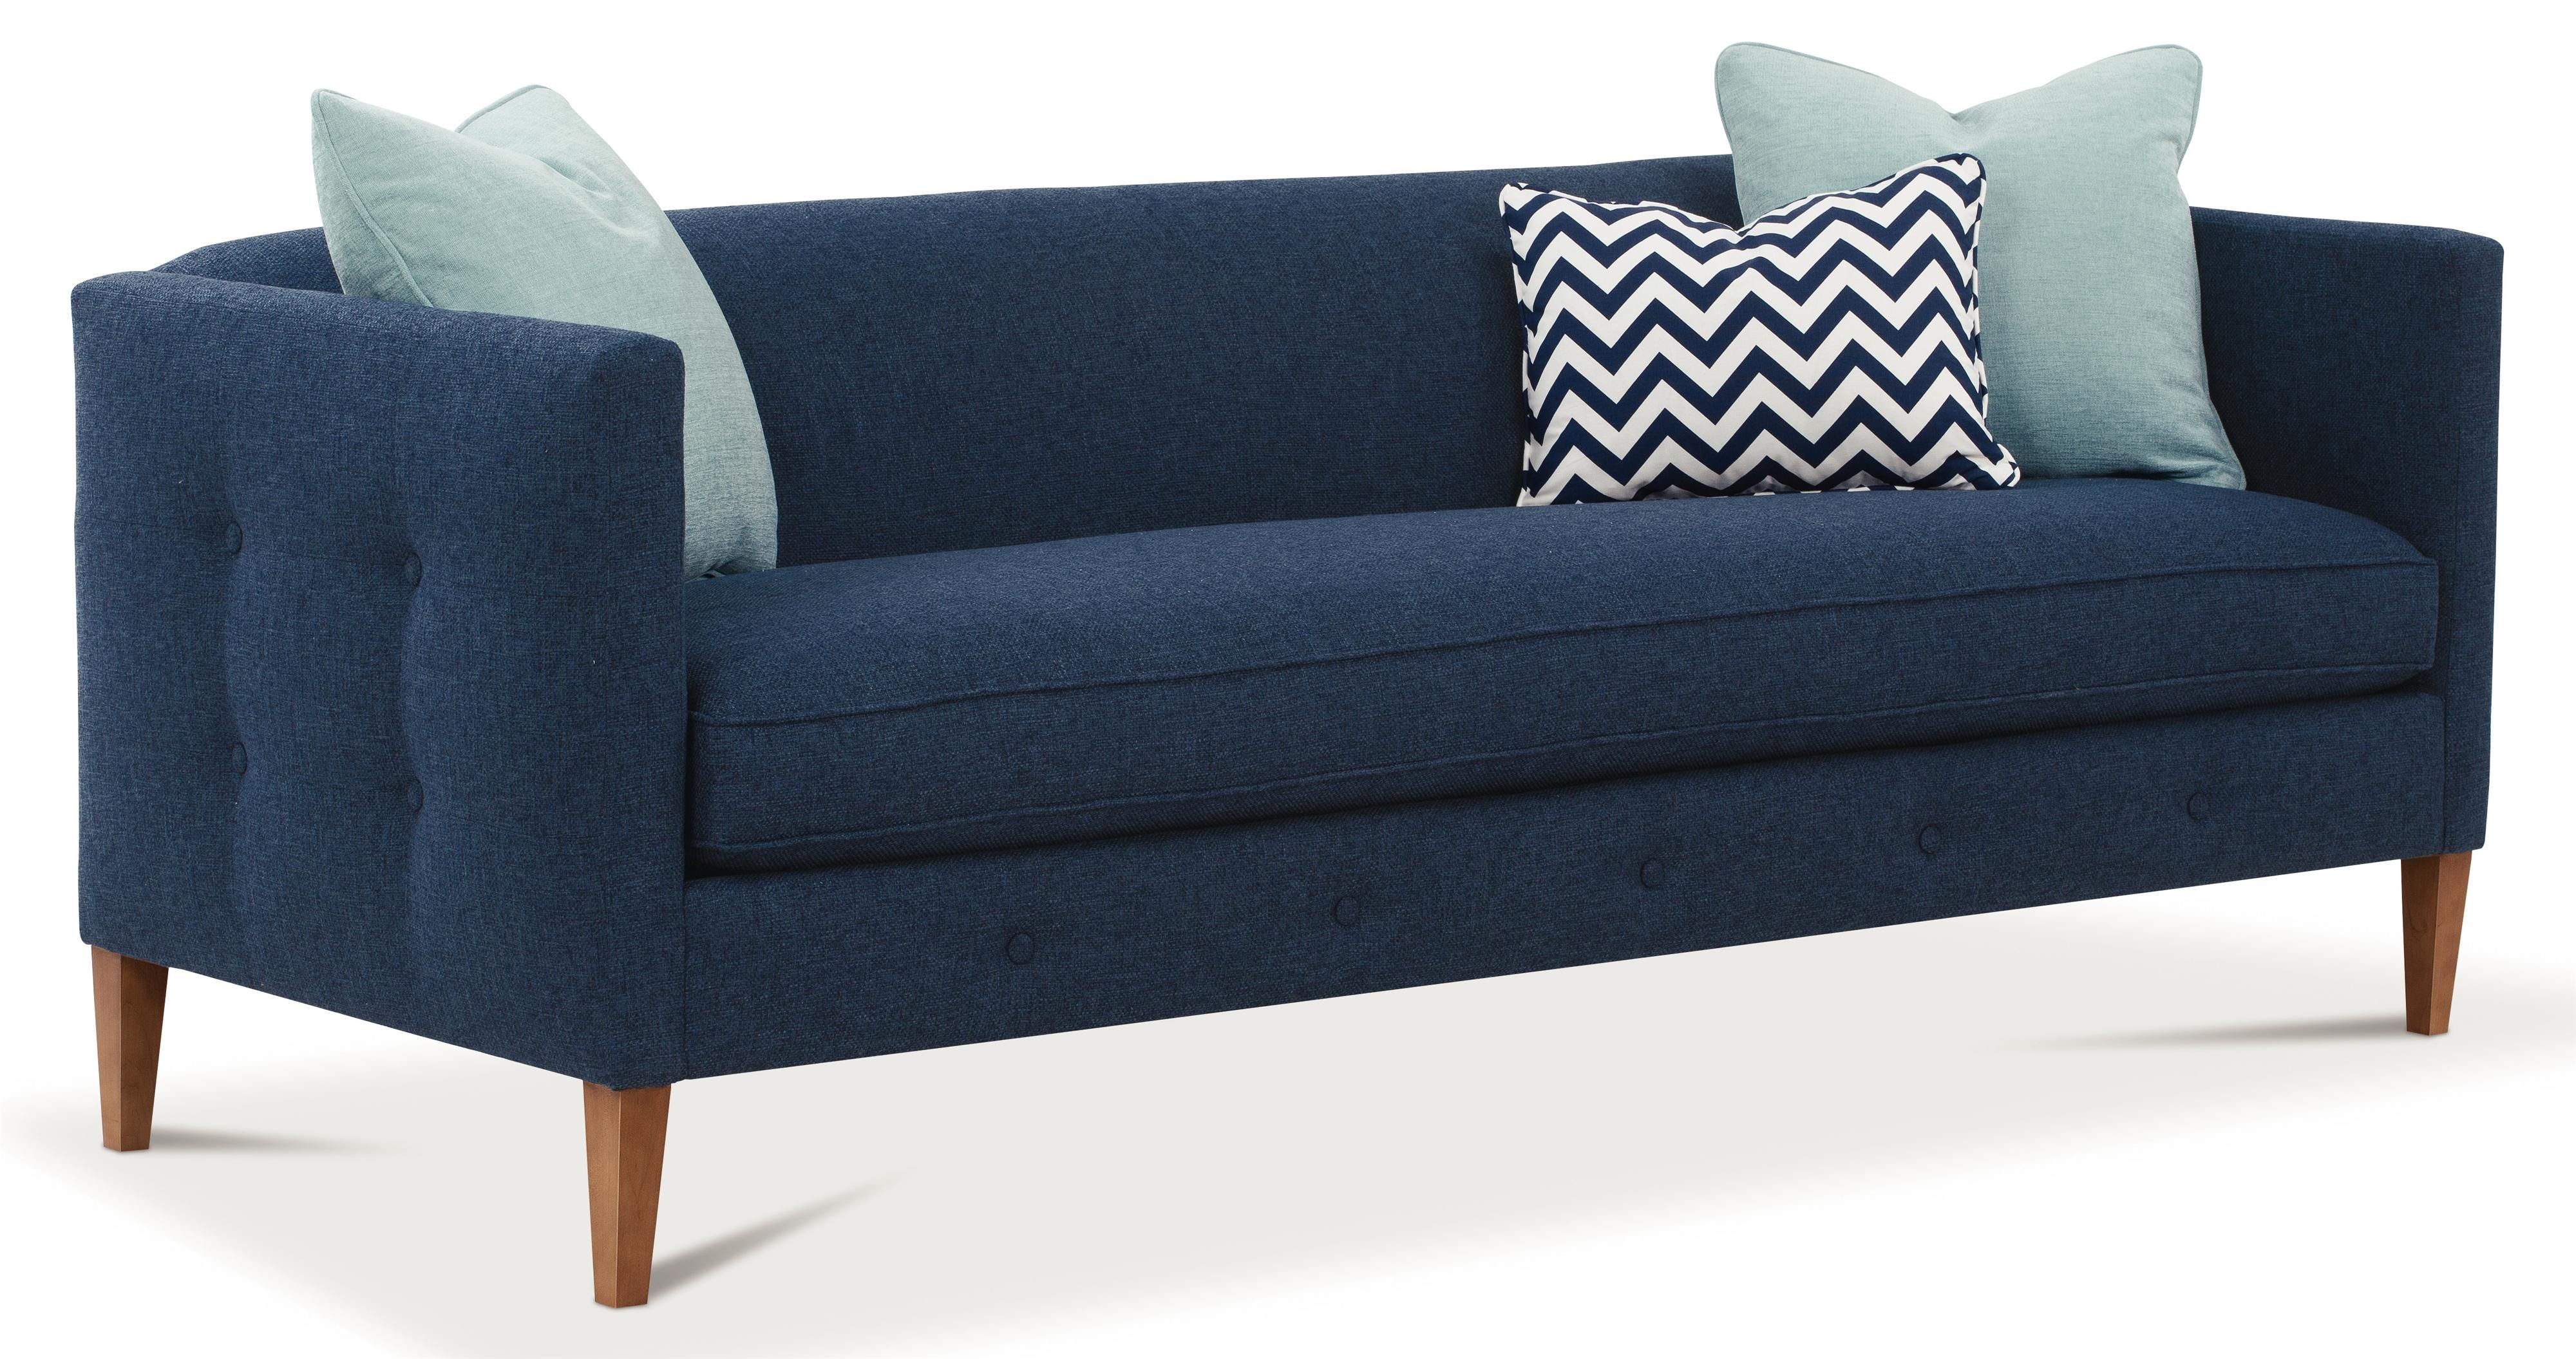 Chaise Lounge Sofa darvins Claire Bench Cushion Sofa by Rowe